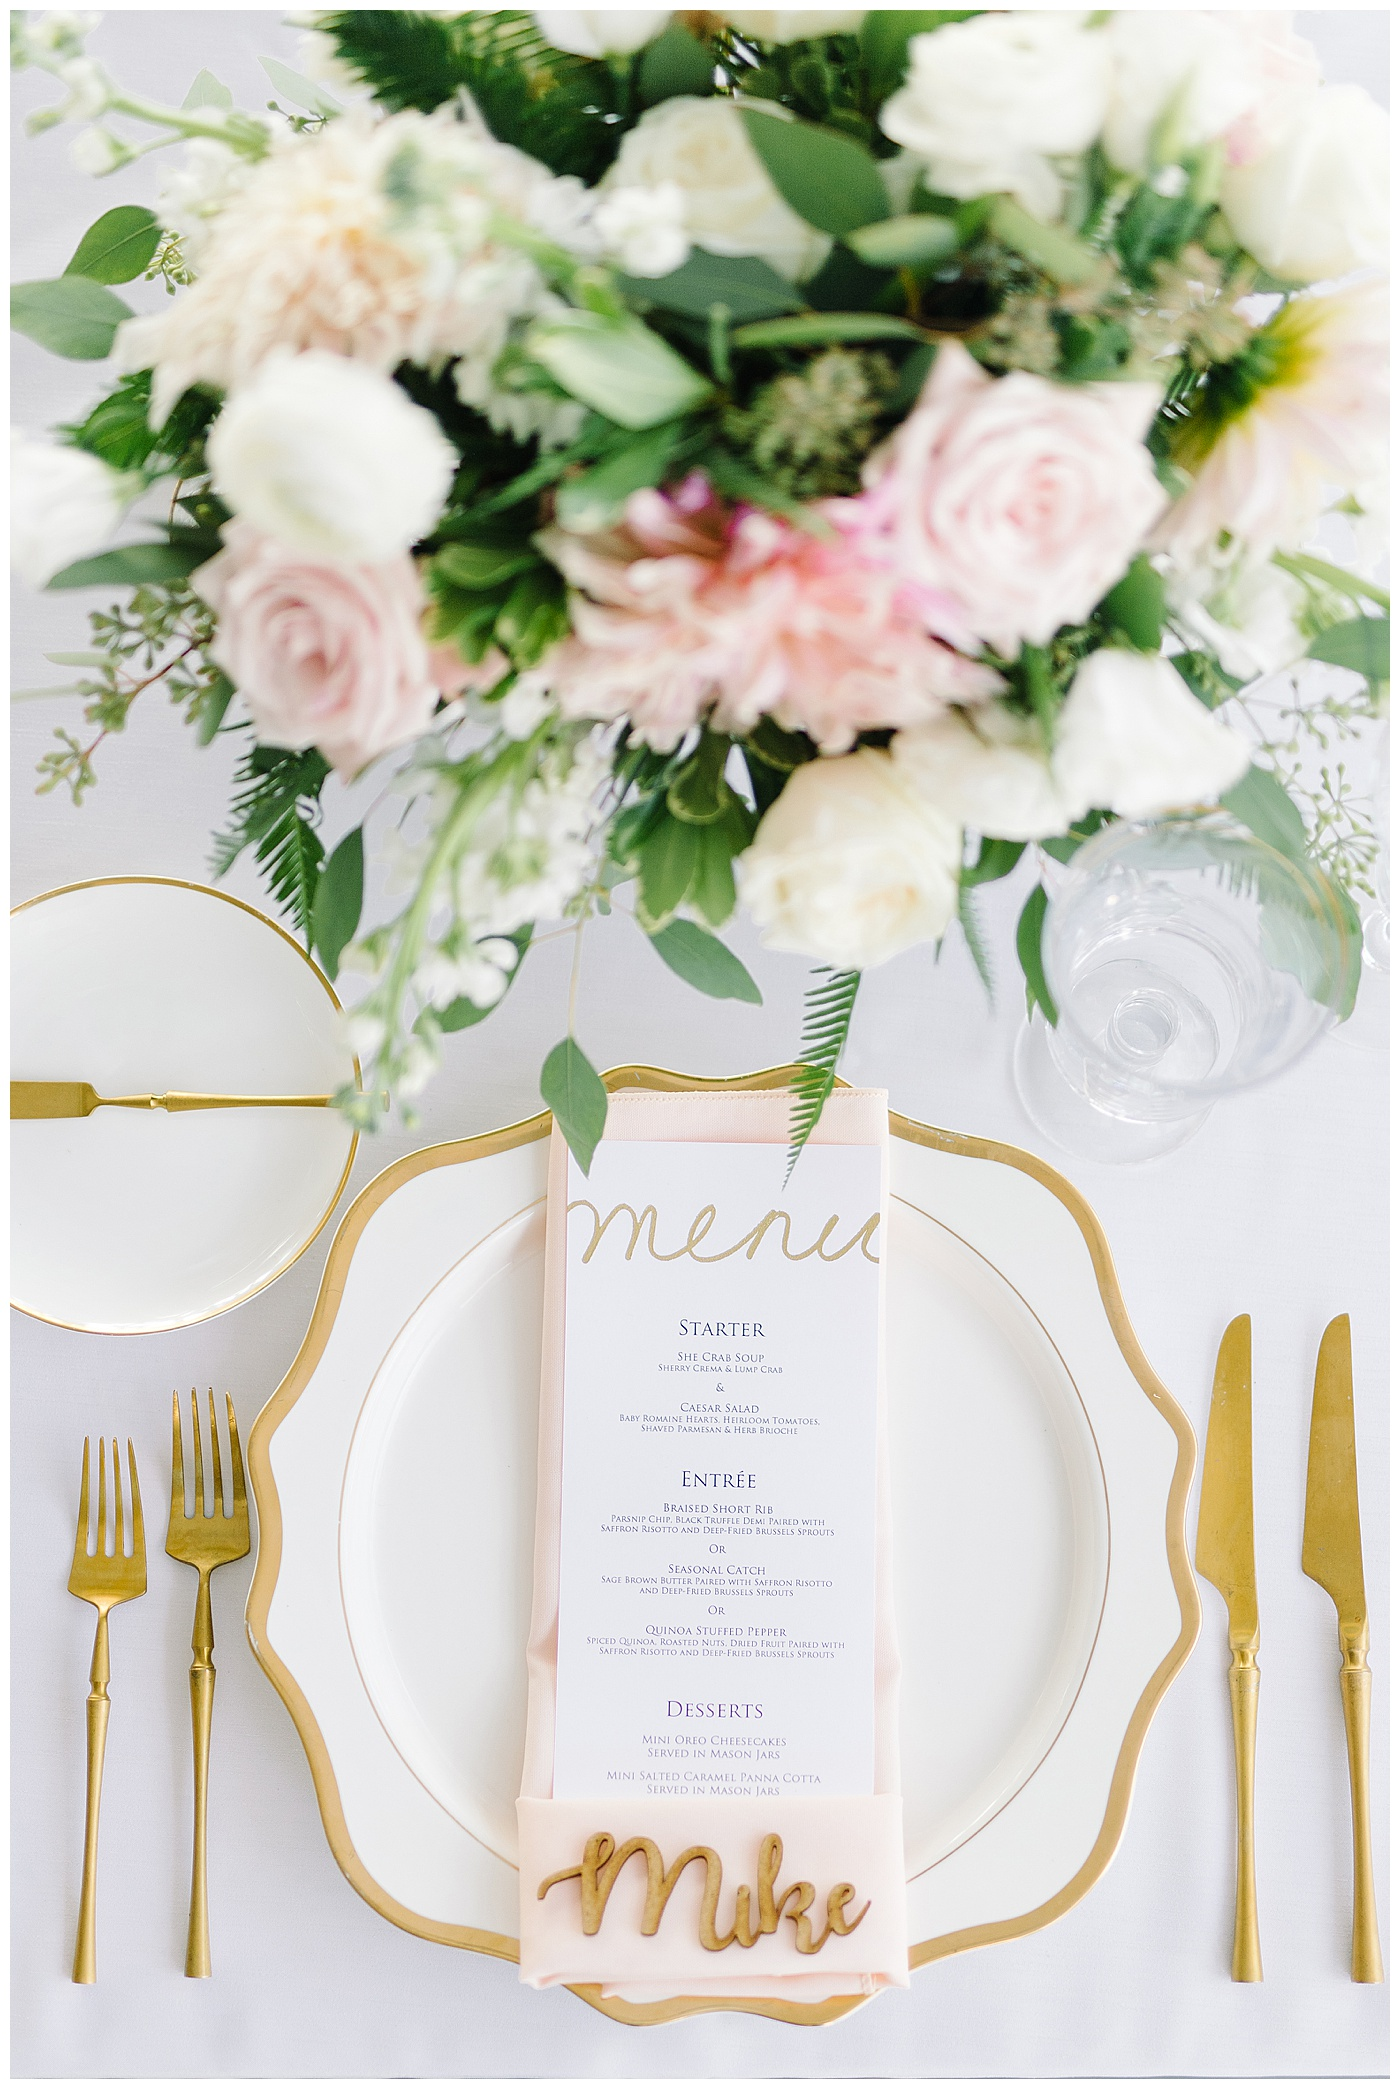 pink, white, and gold wedding reception place setting